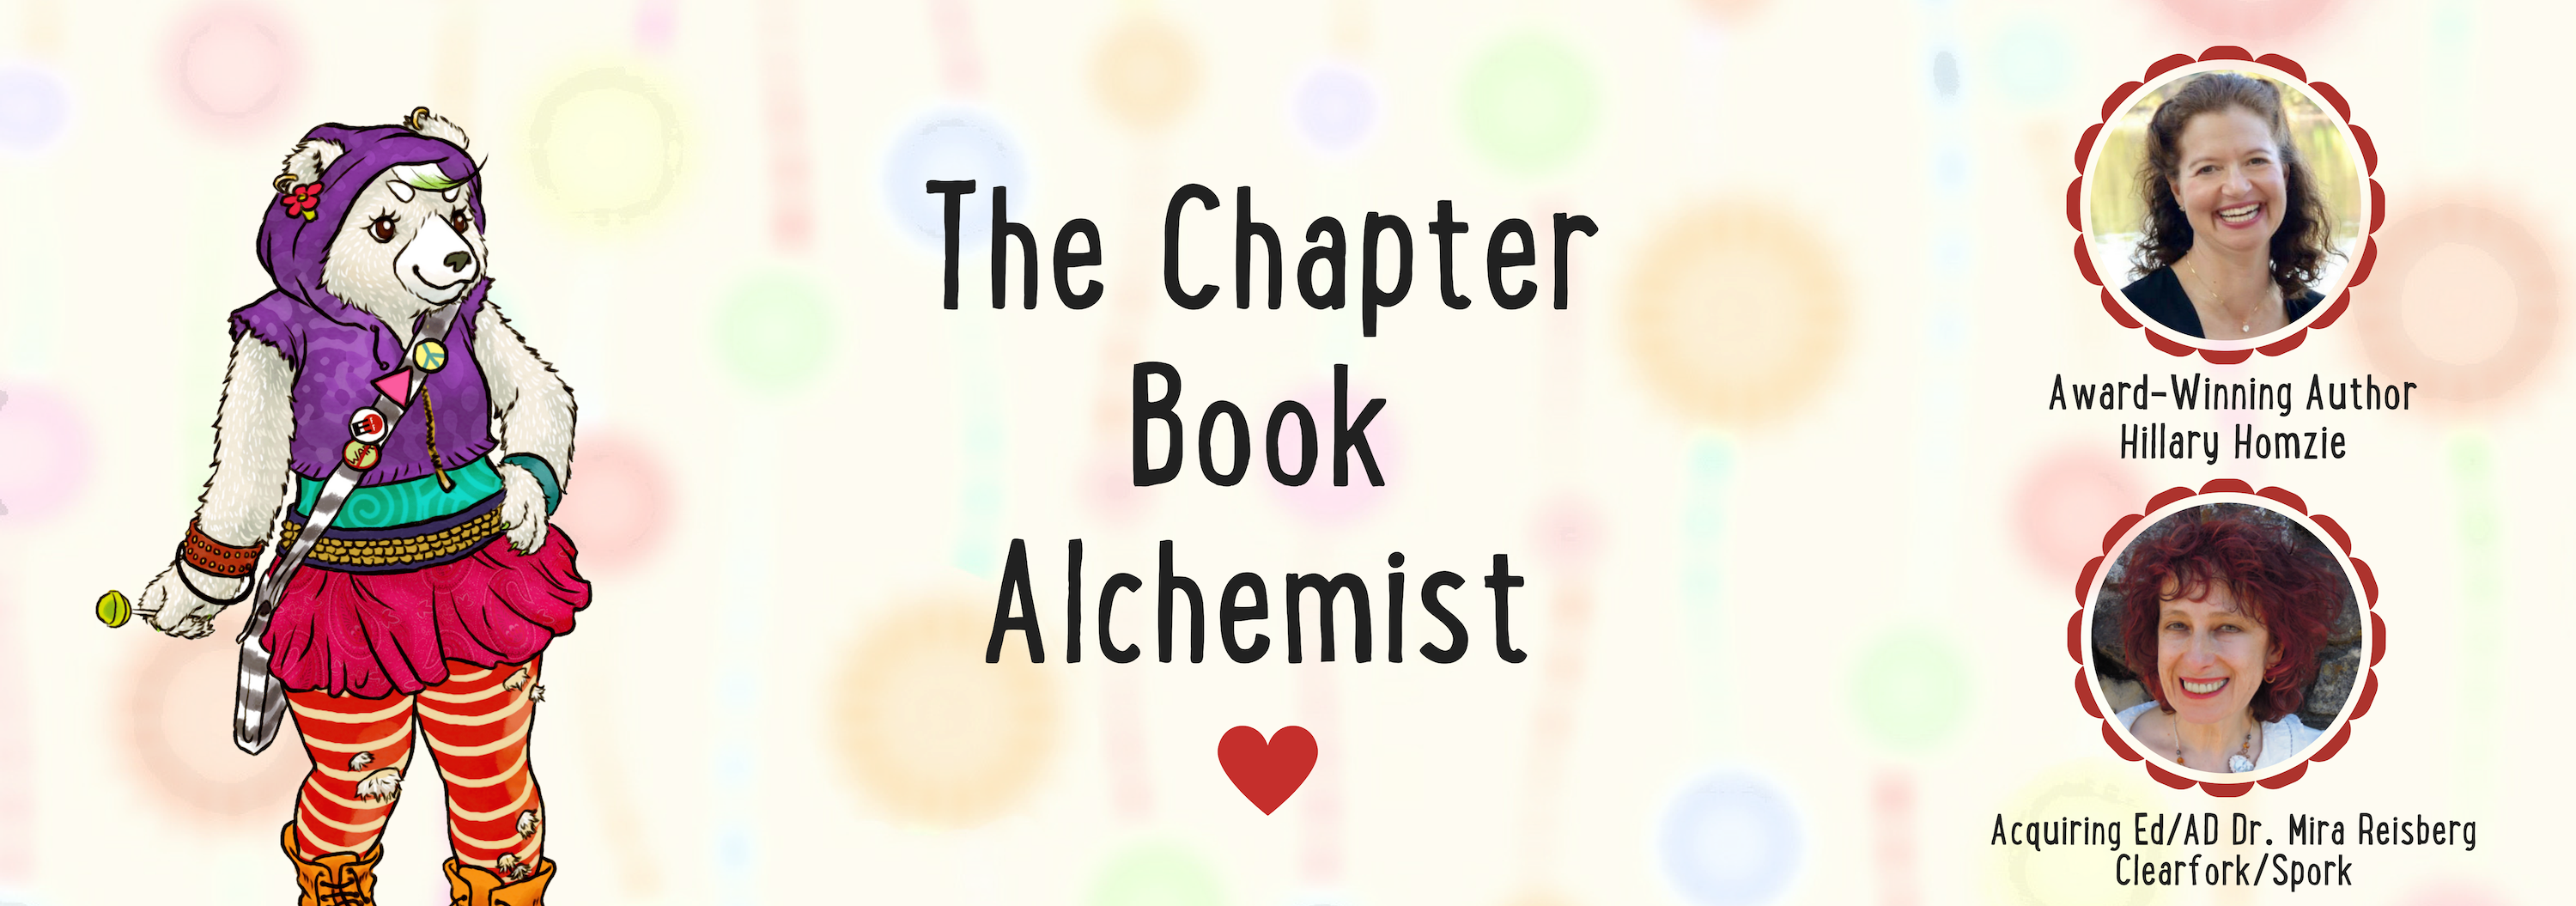 The Chapter Book Alchemist at the Children's Book Academy